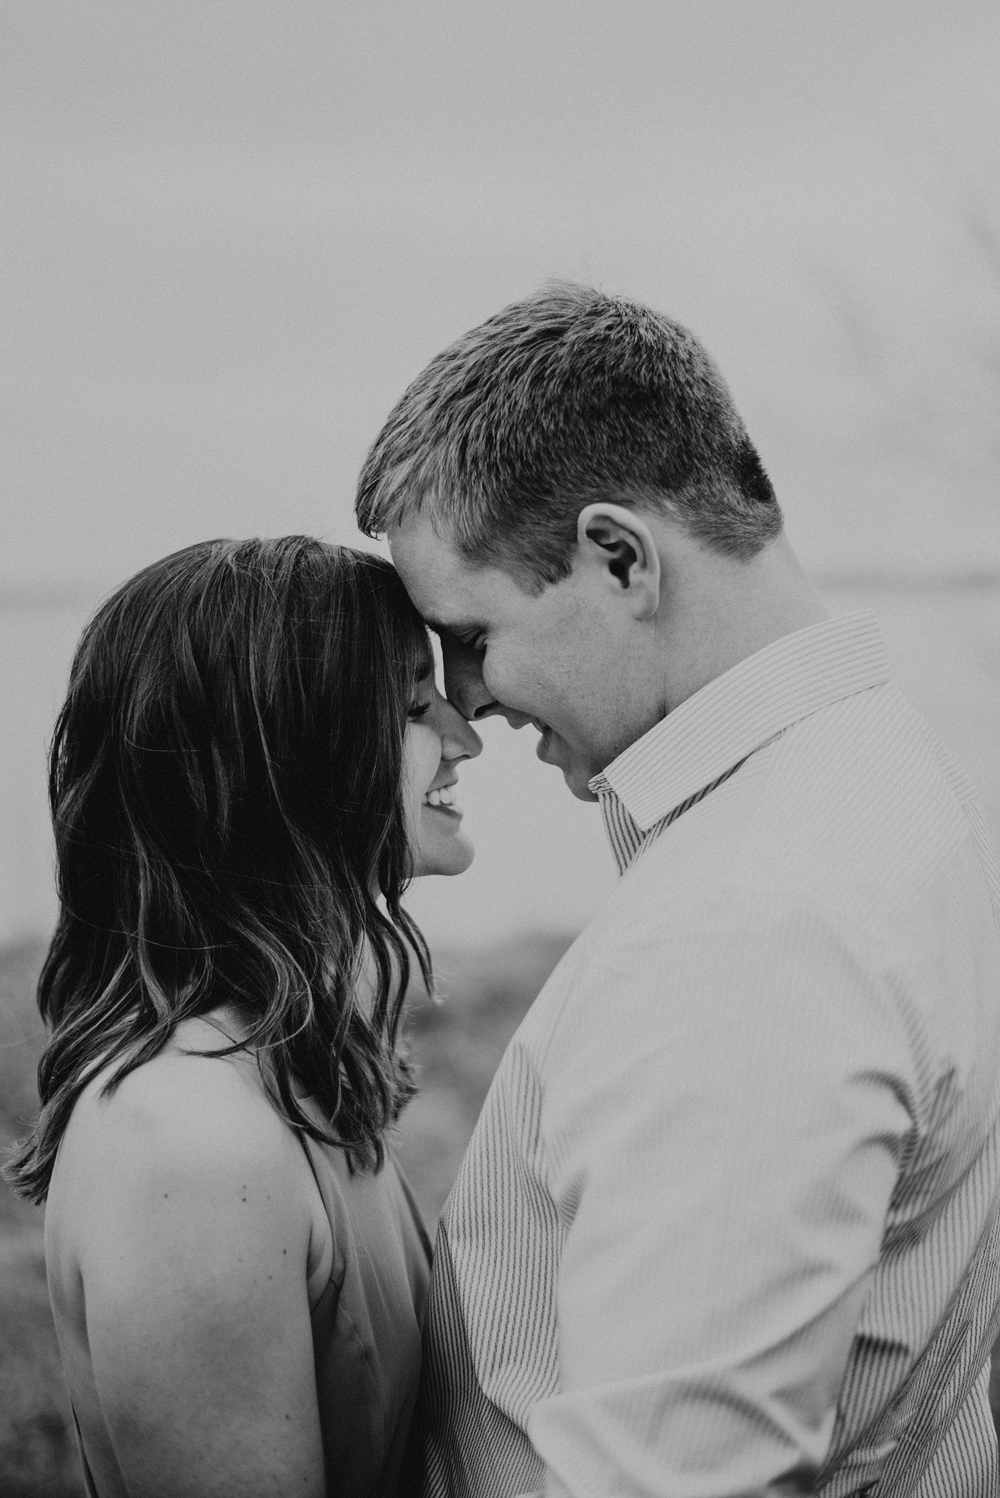 kaylie-sirek-nebraska-wedding-engagement-photographer-photography-grand-island-kearney-hastings-lincoln-15.png